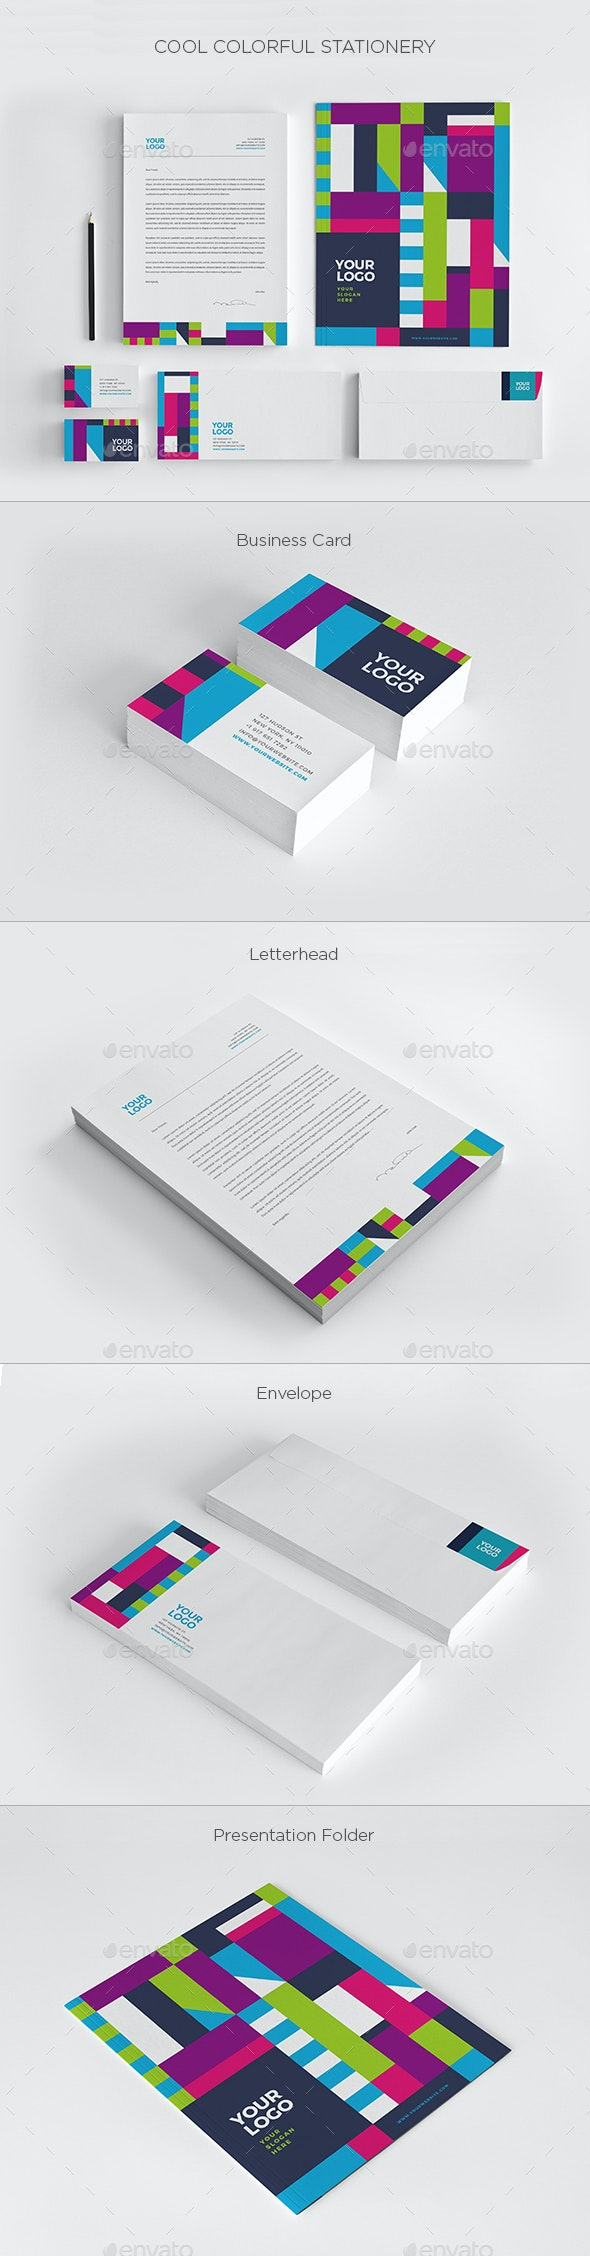 Cool Colorful Stationery - Stationery Print Templates